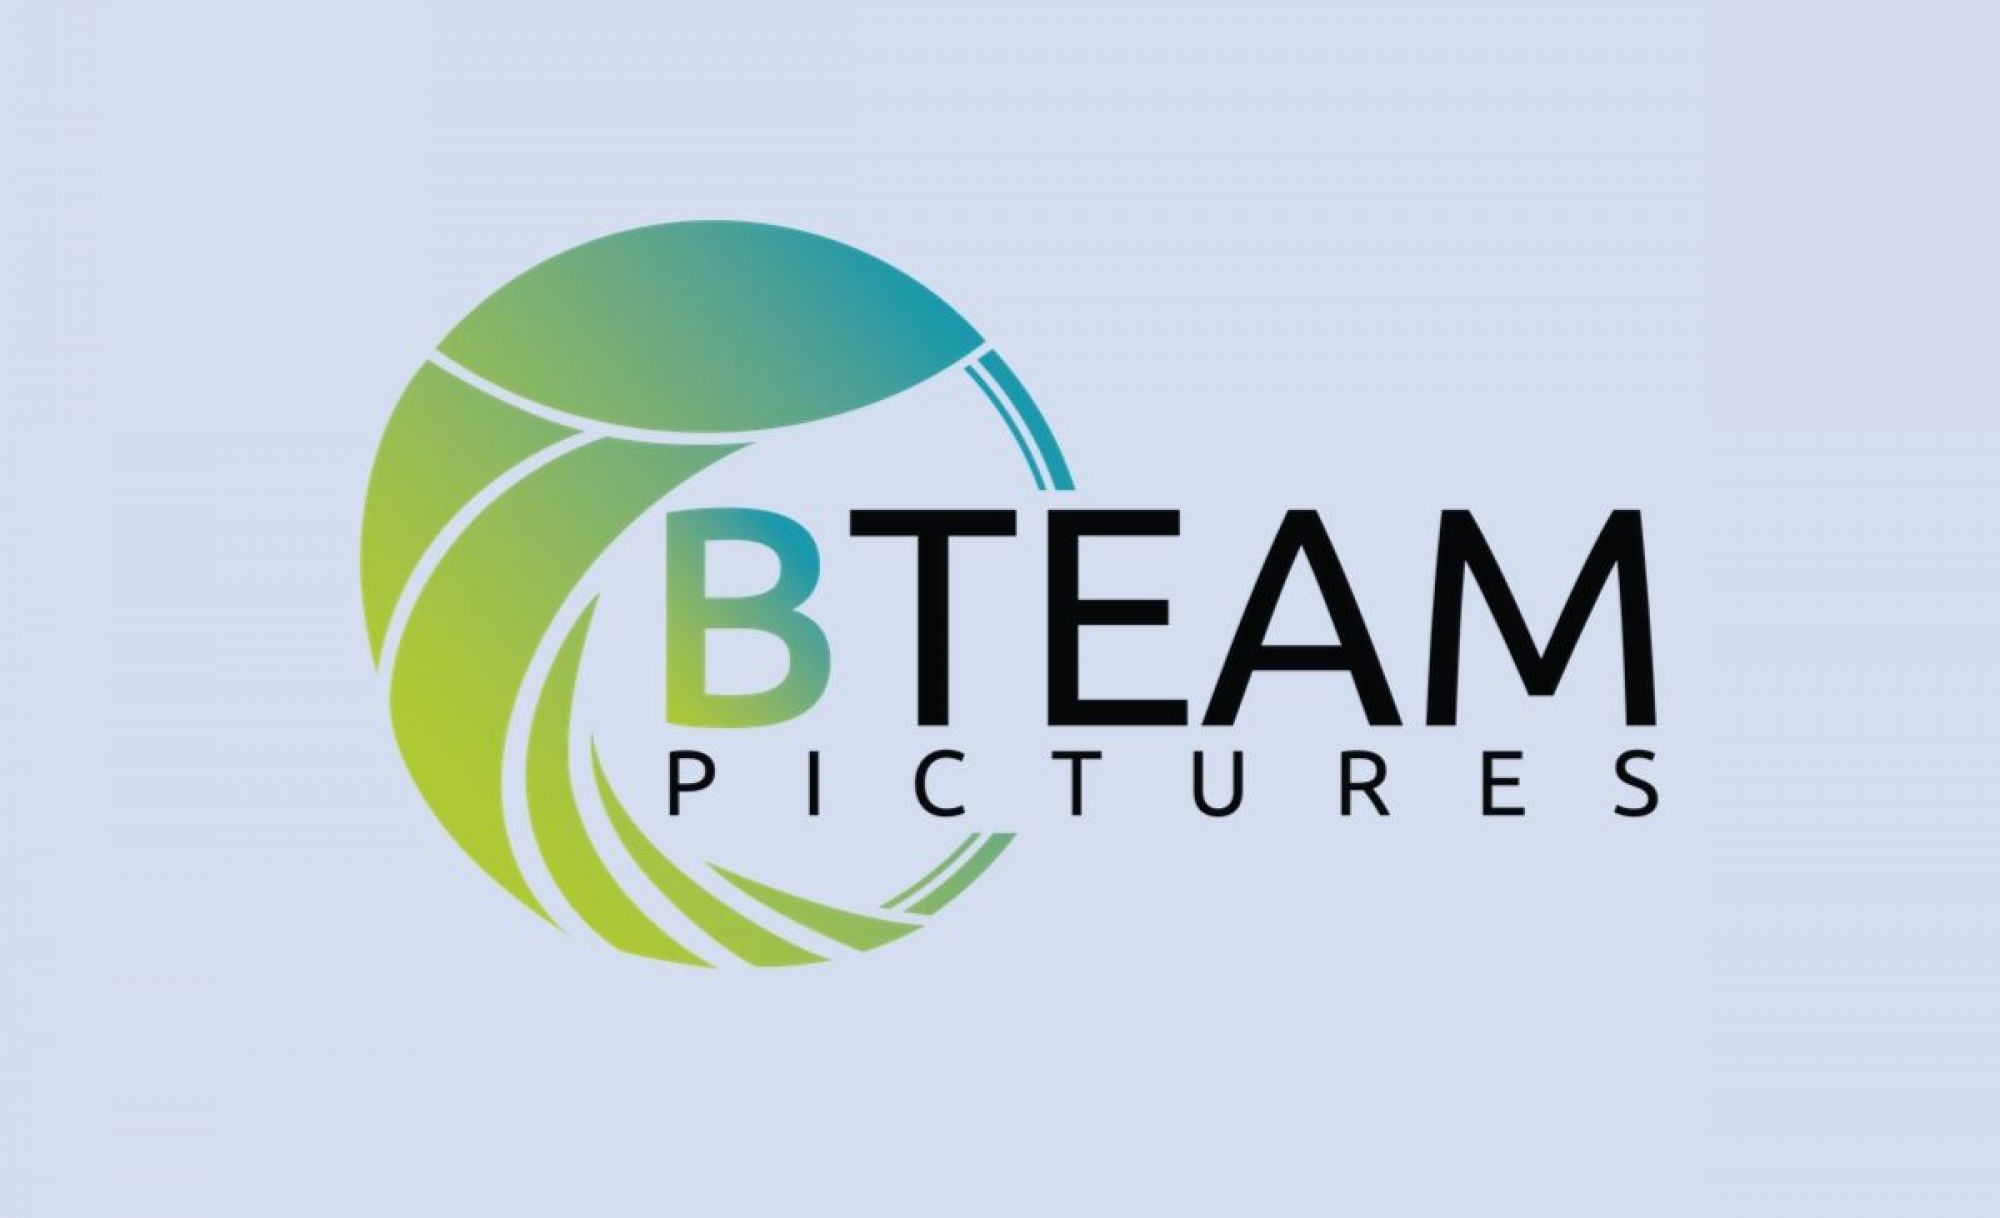 Bteam_Pictures1